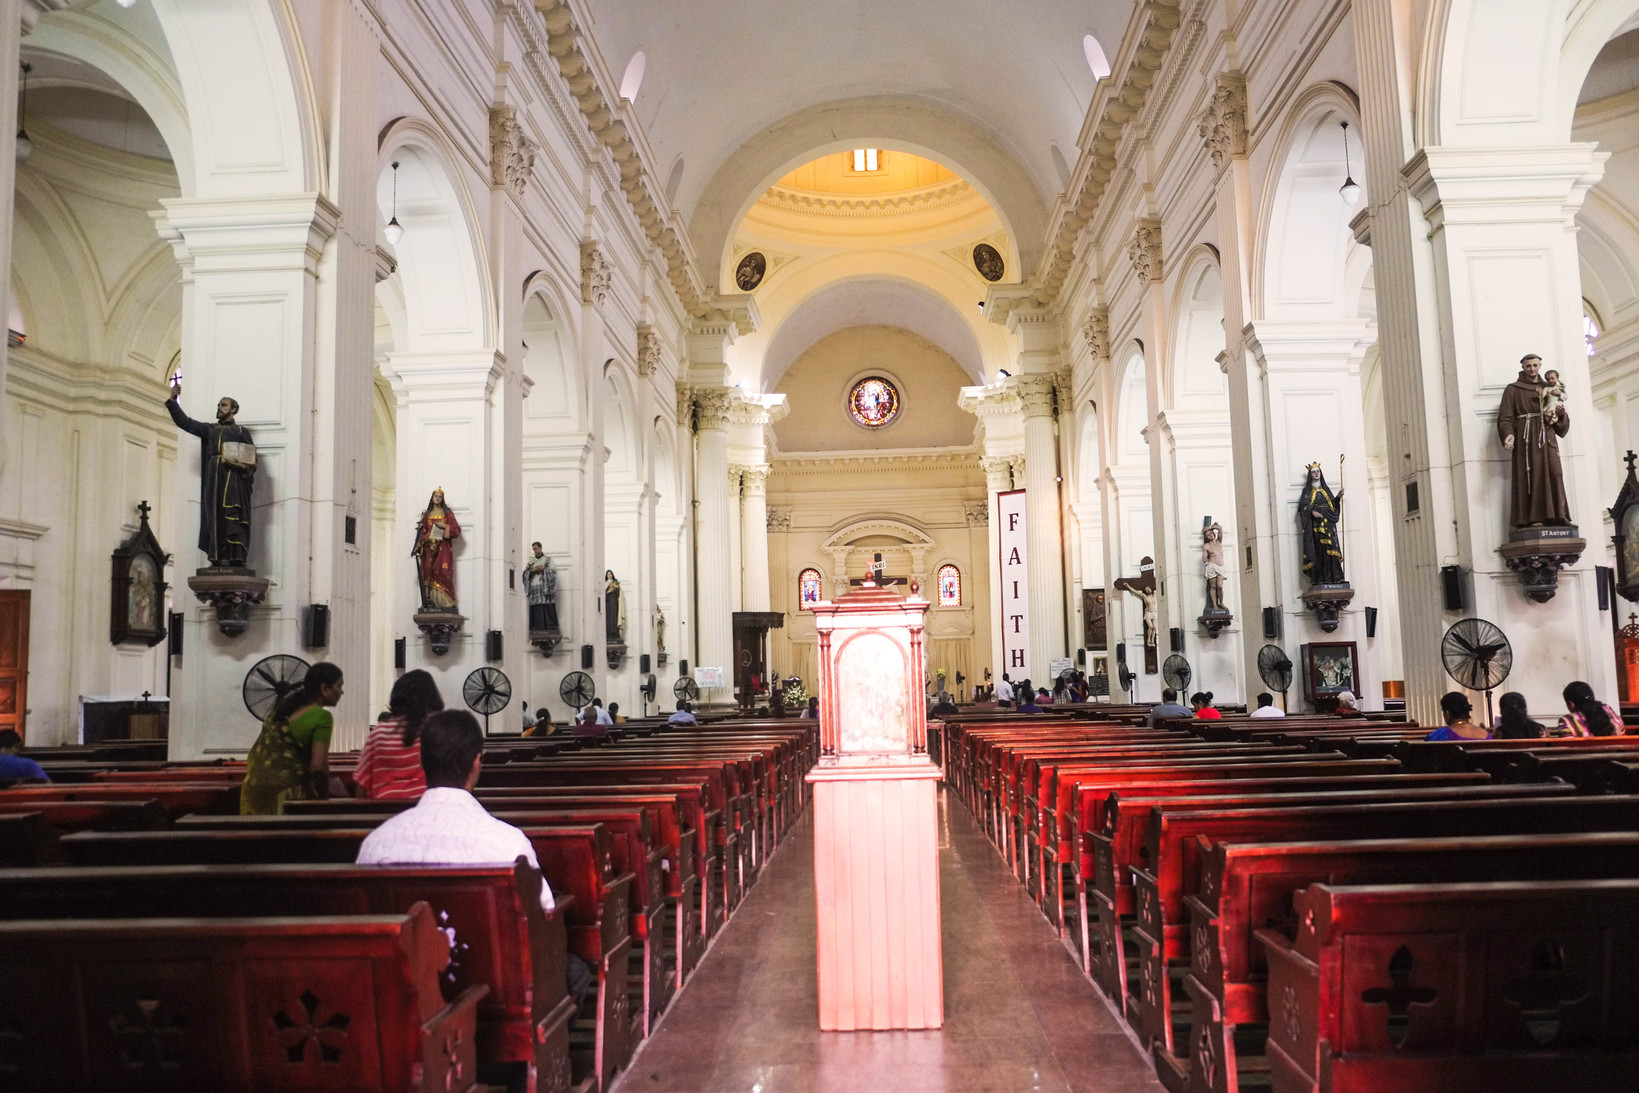 St Lucia's Catherdral